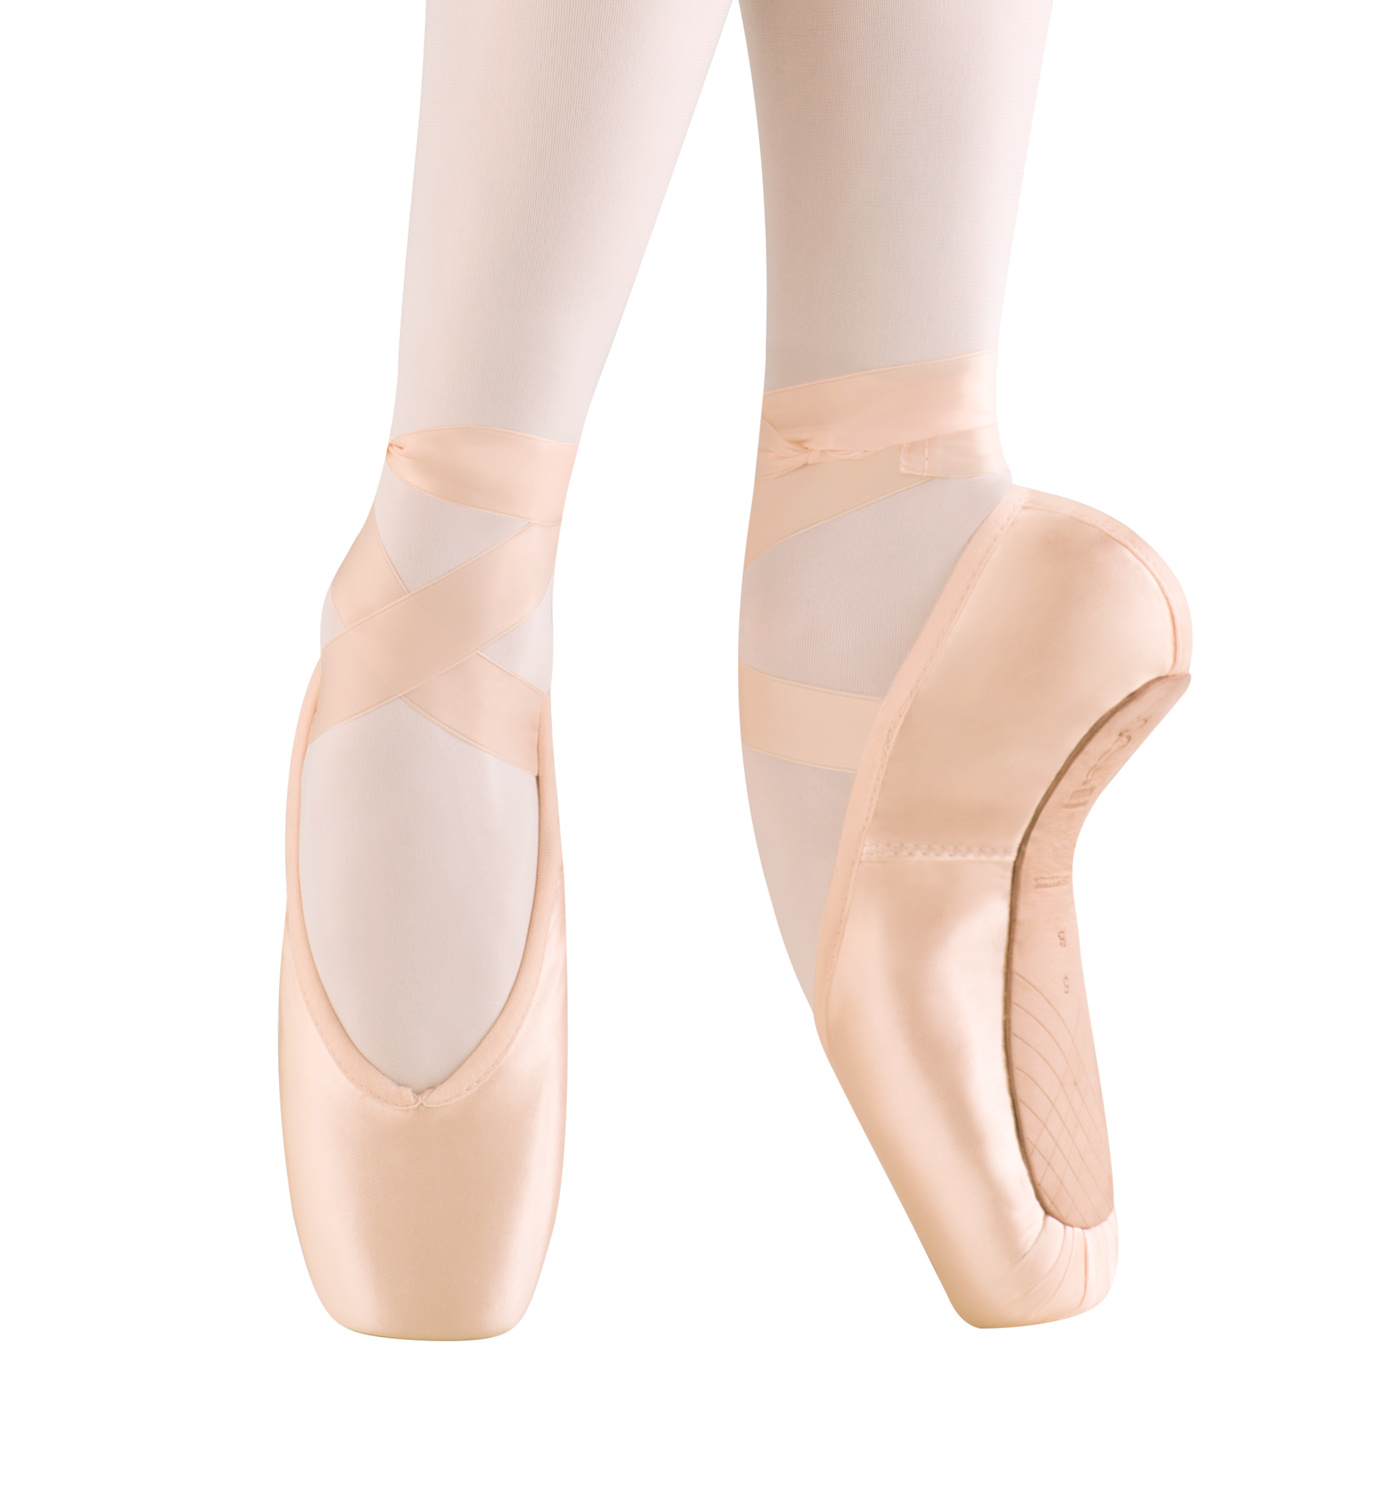 Pointe Shoes For Beginners Images & Pictures - Becuo